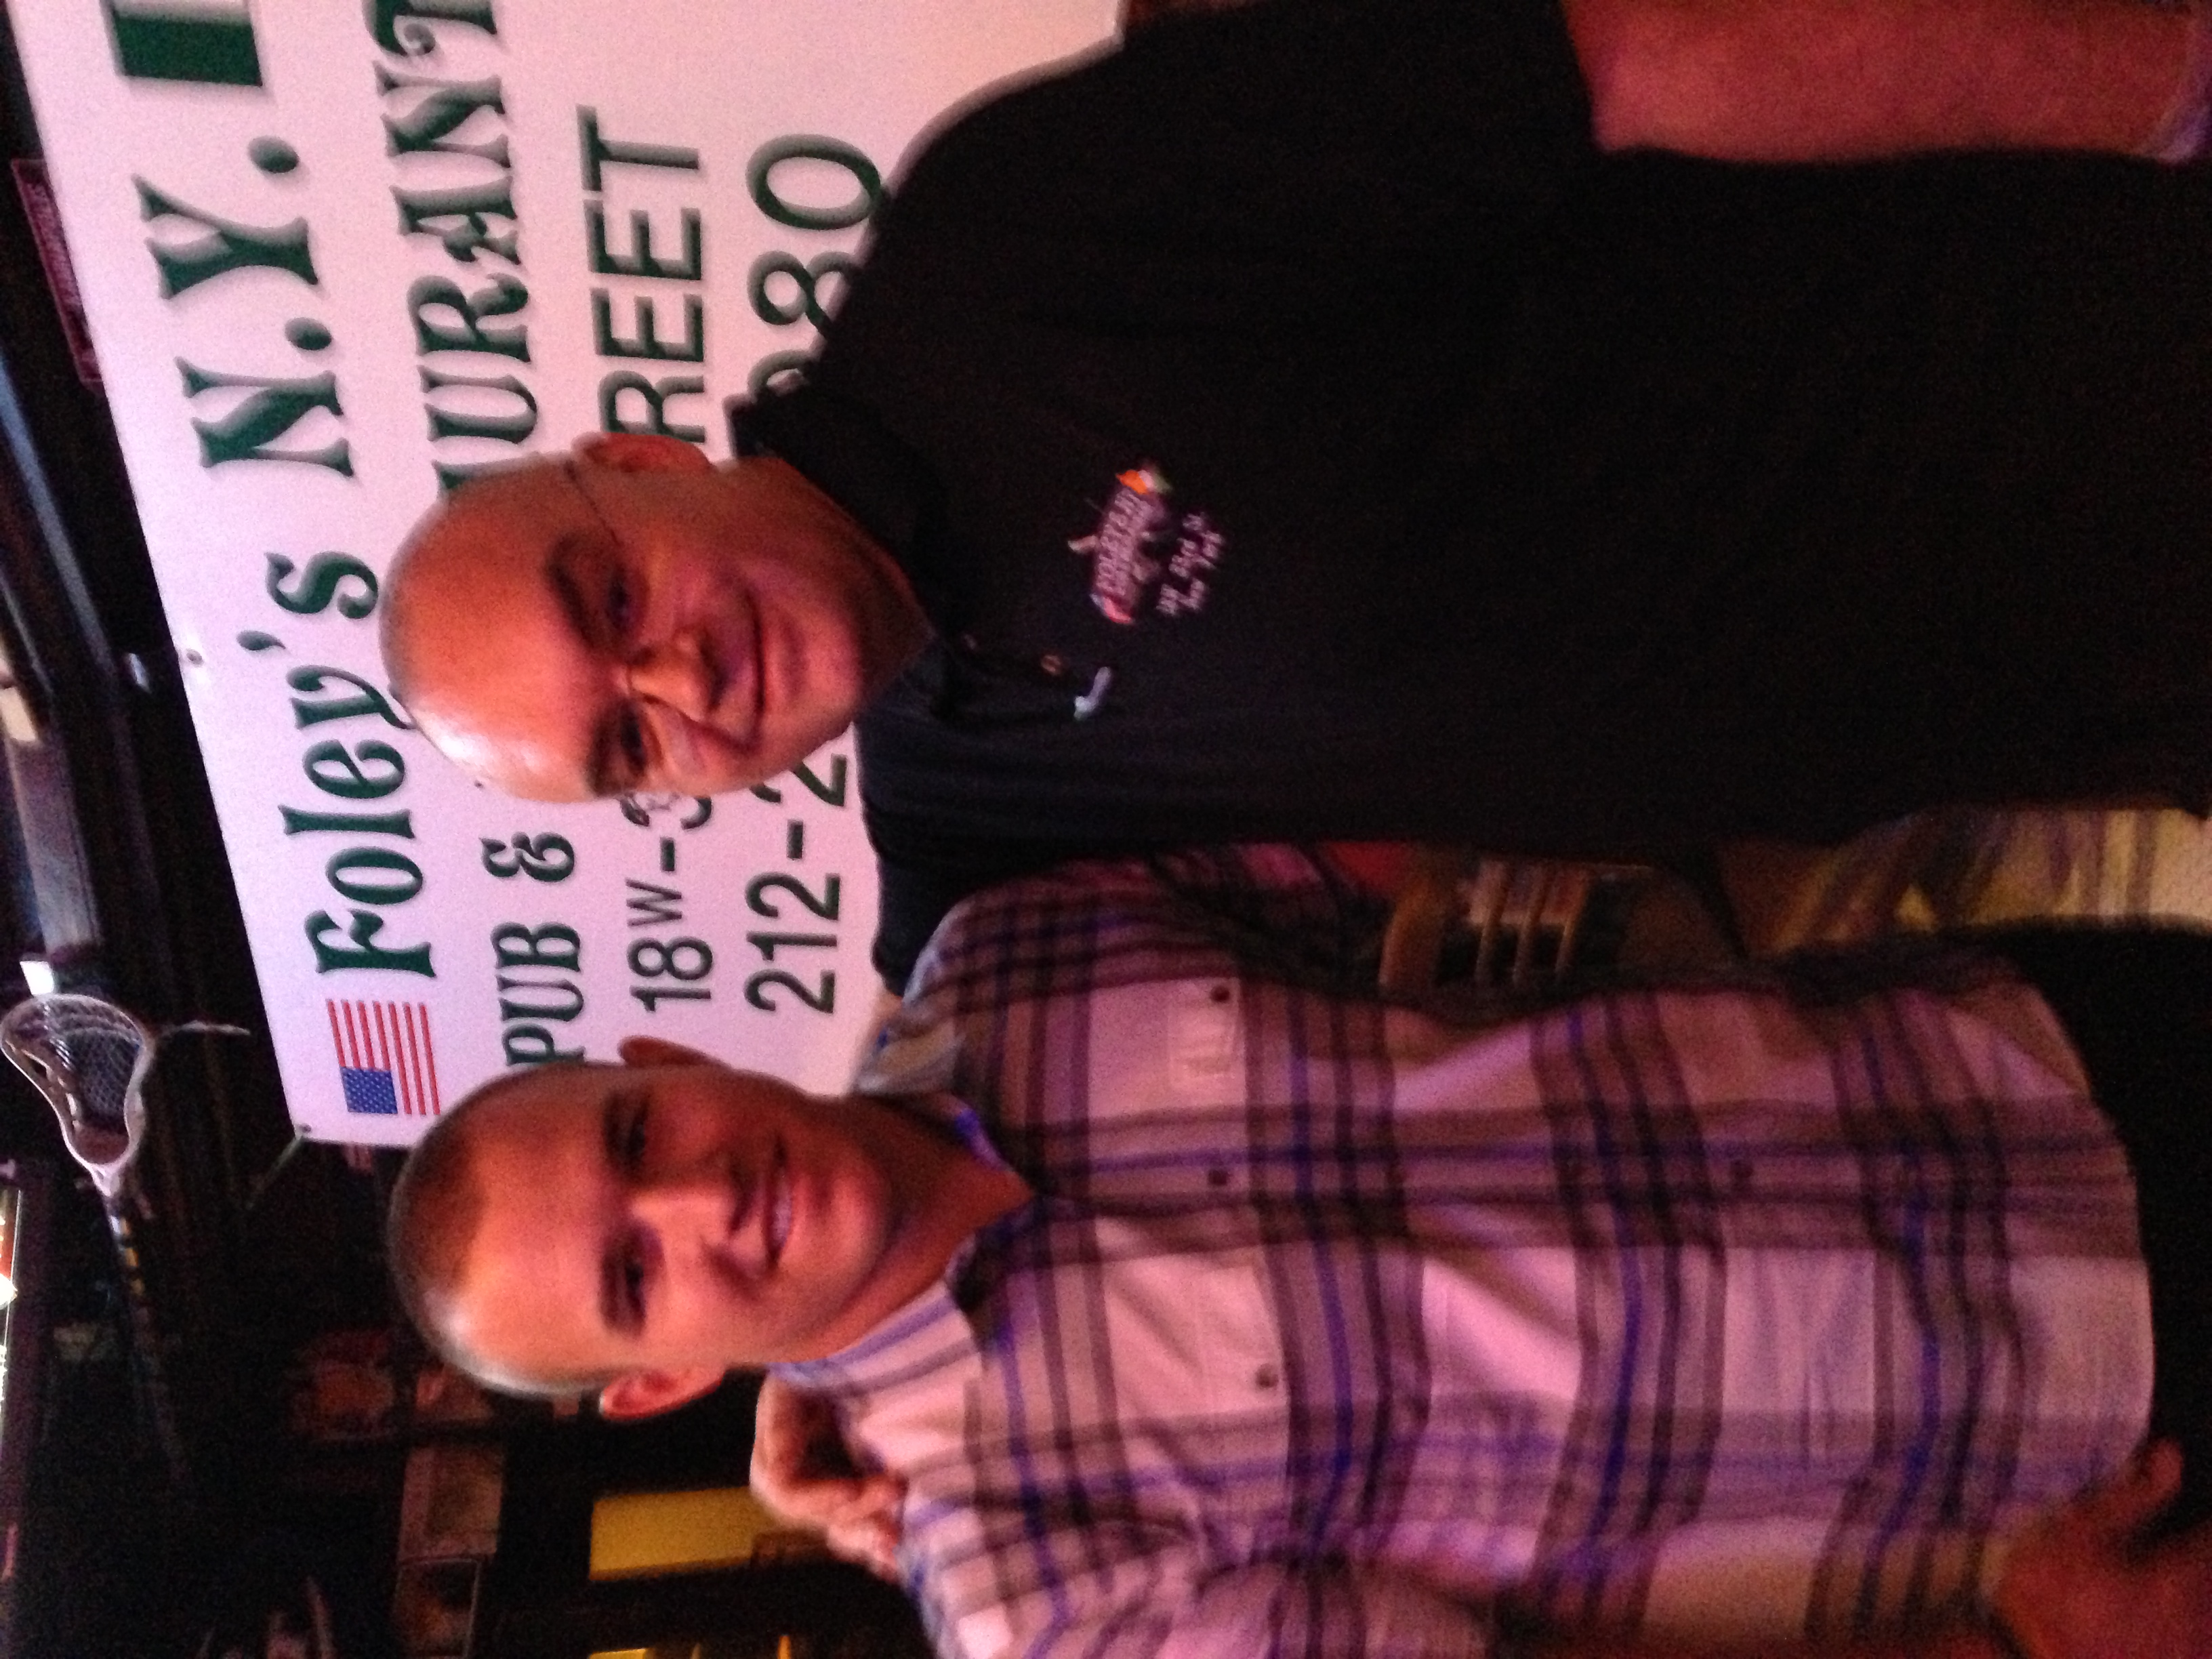 Mike Trout at Foley's